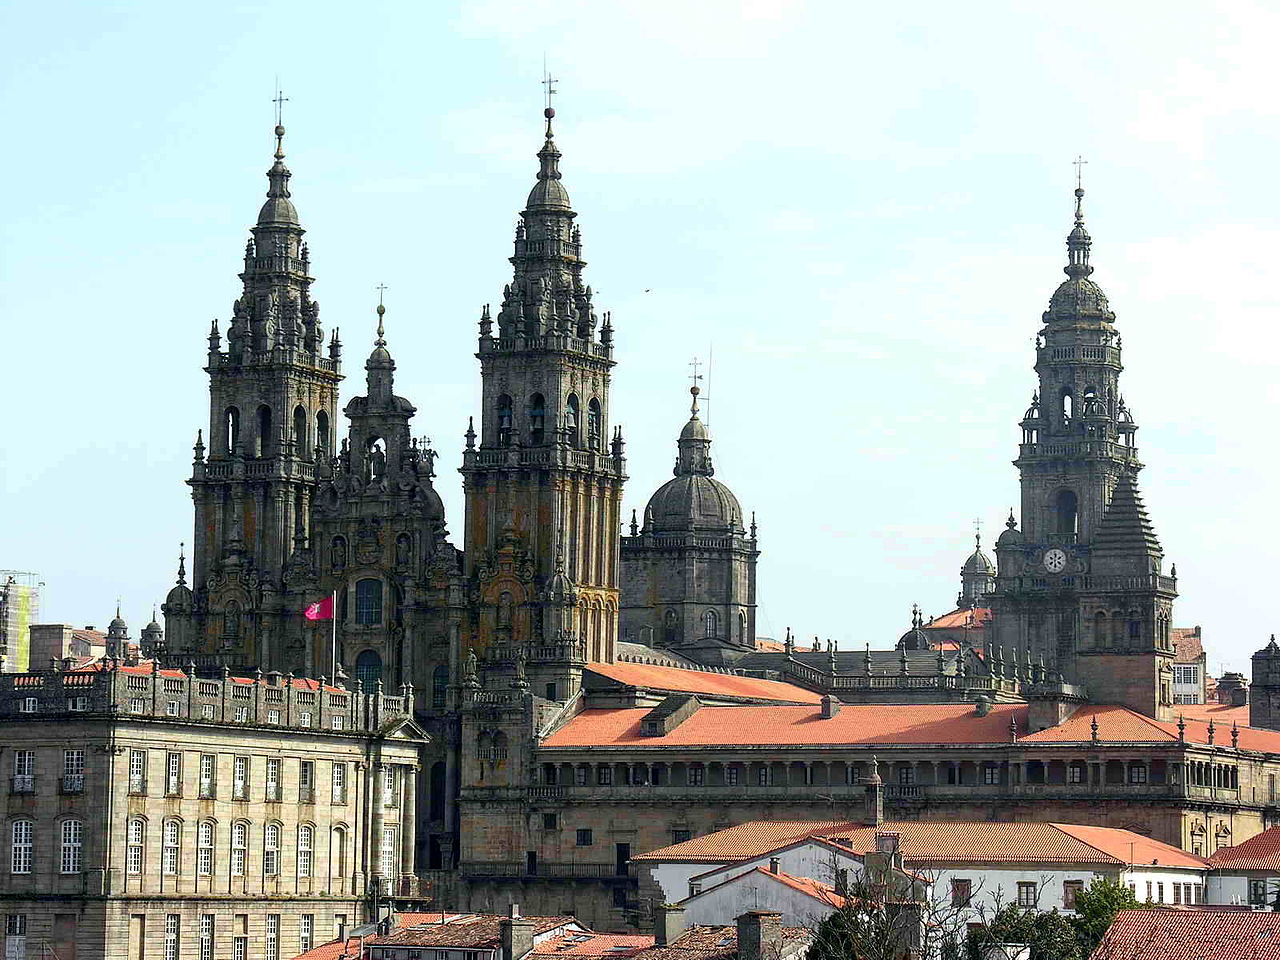 Overview of the Santiago de Compostela Cathedral